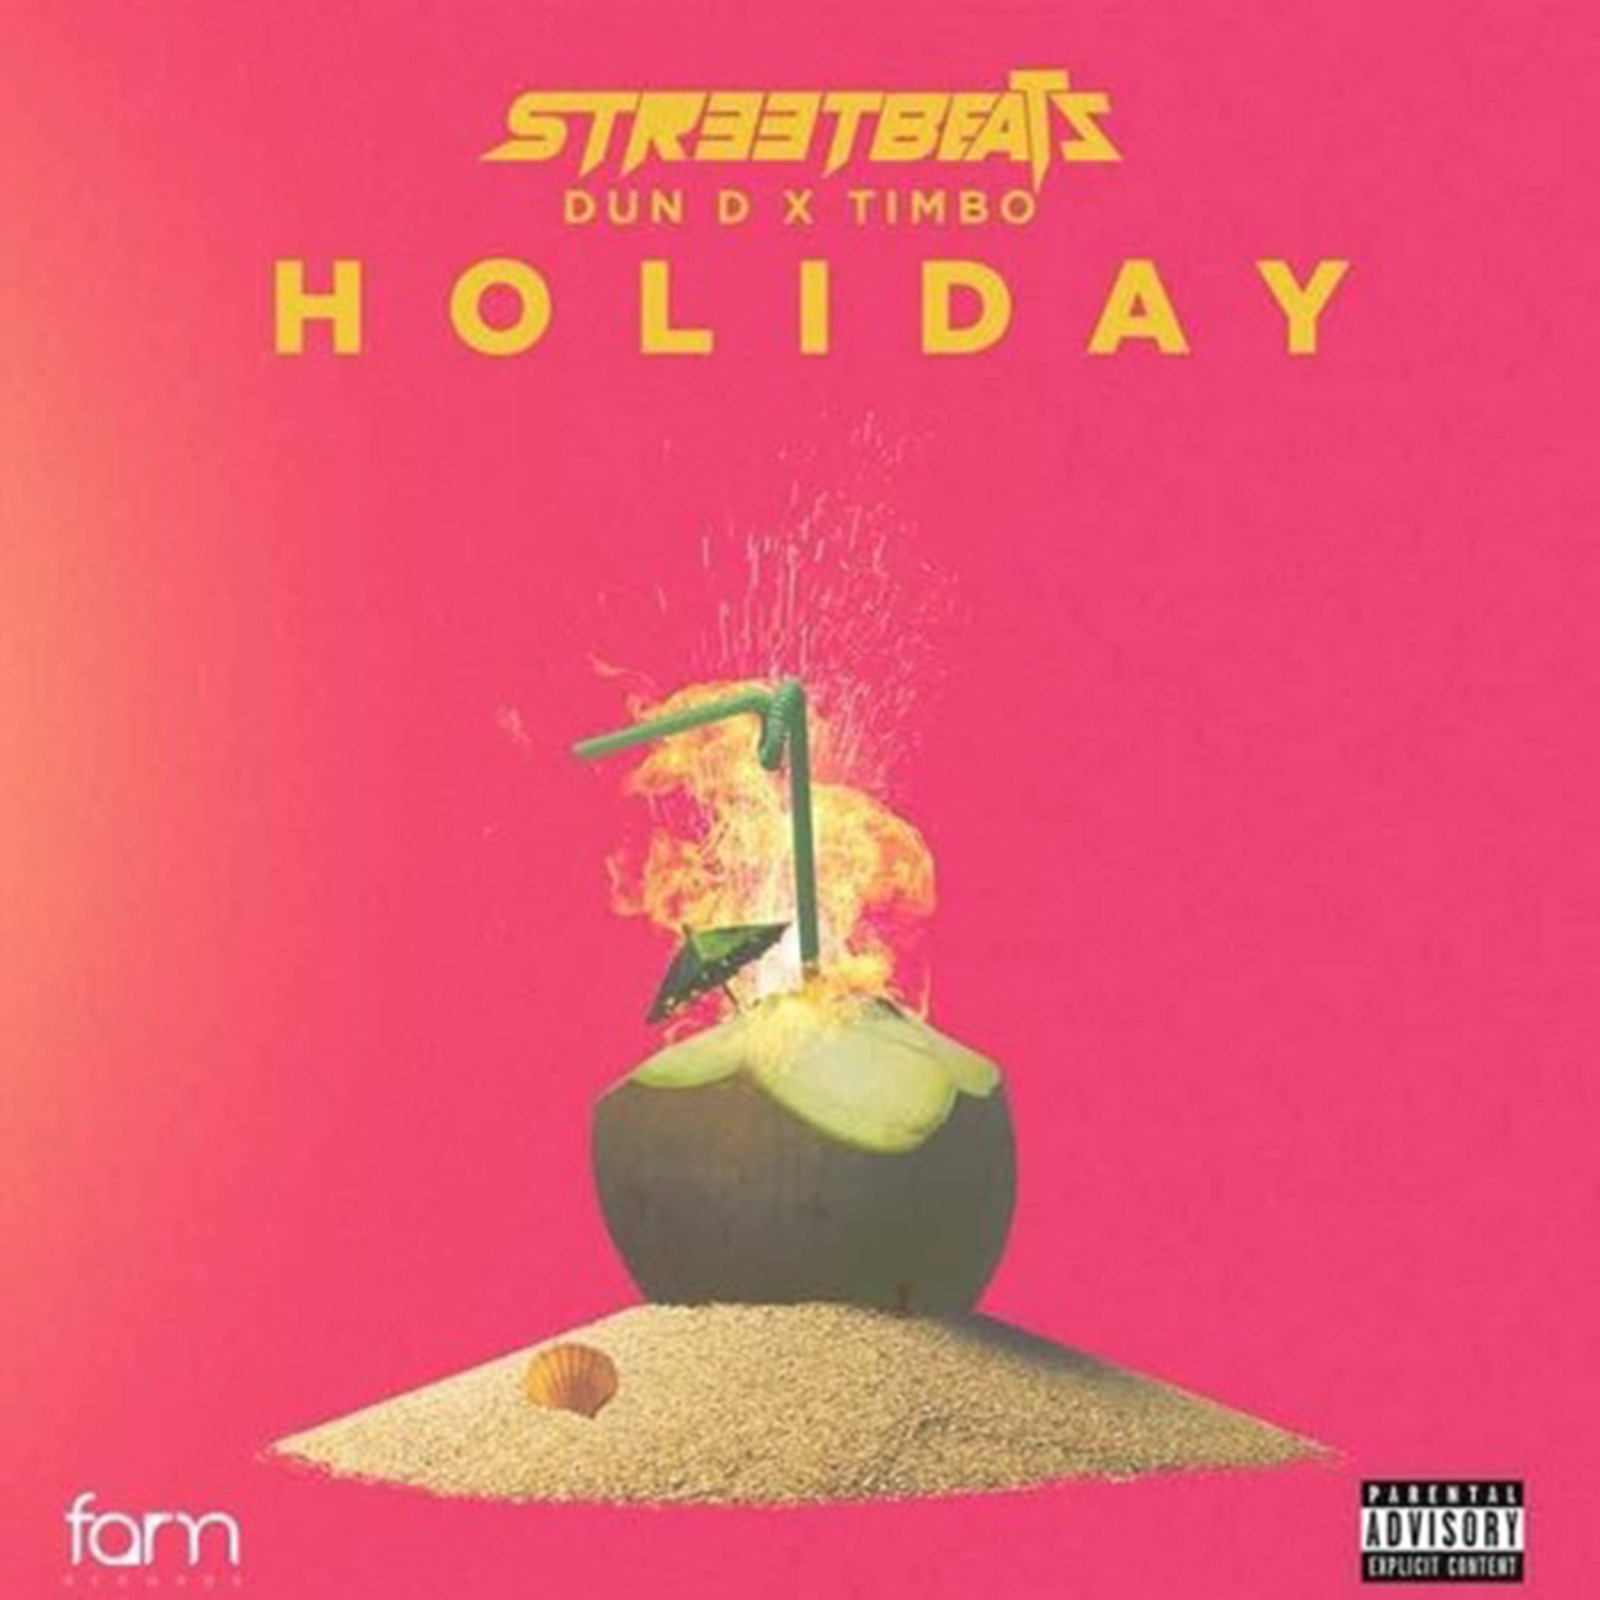 Holiday by Streetbeatz feat. DunD & Timbo